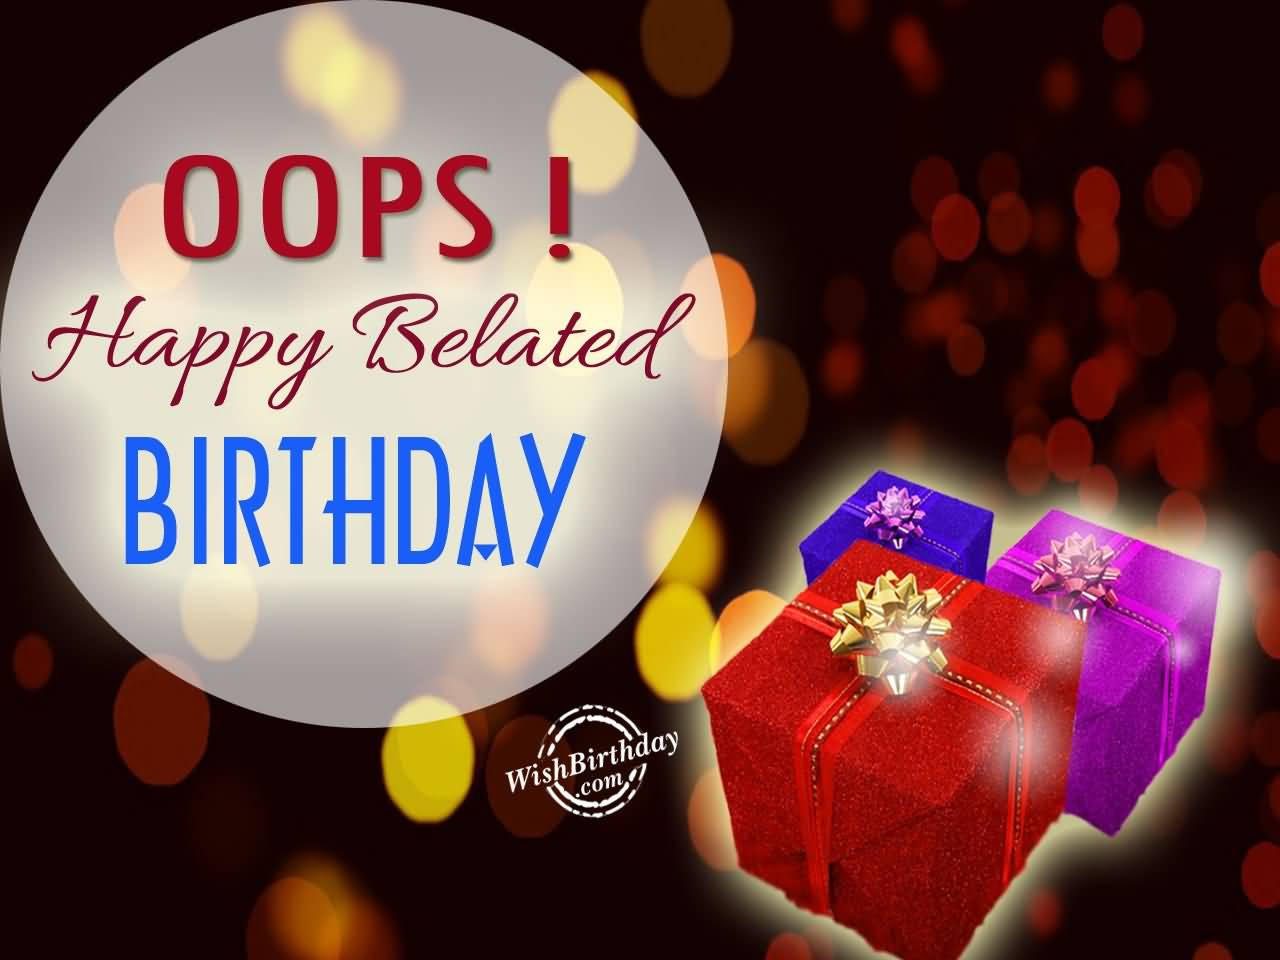 40 Best Belated Birthday Wishes, Sayings, Quotes & Photos